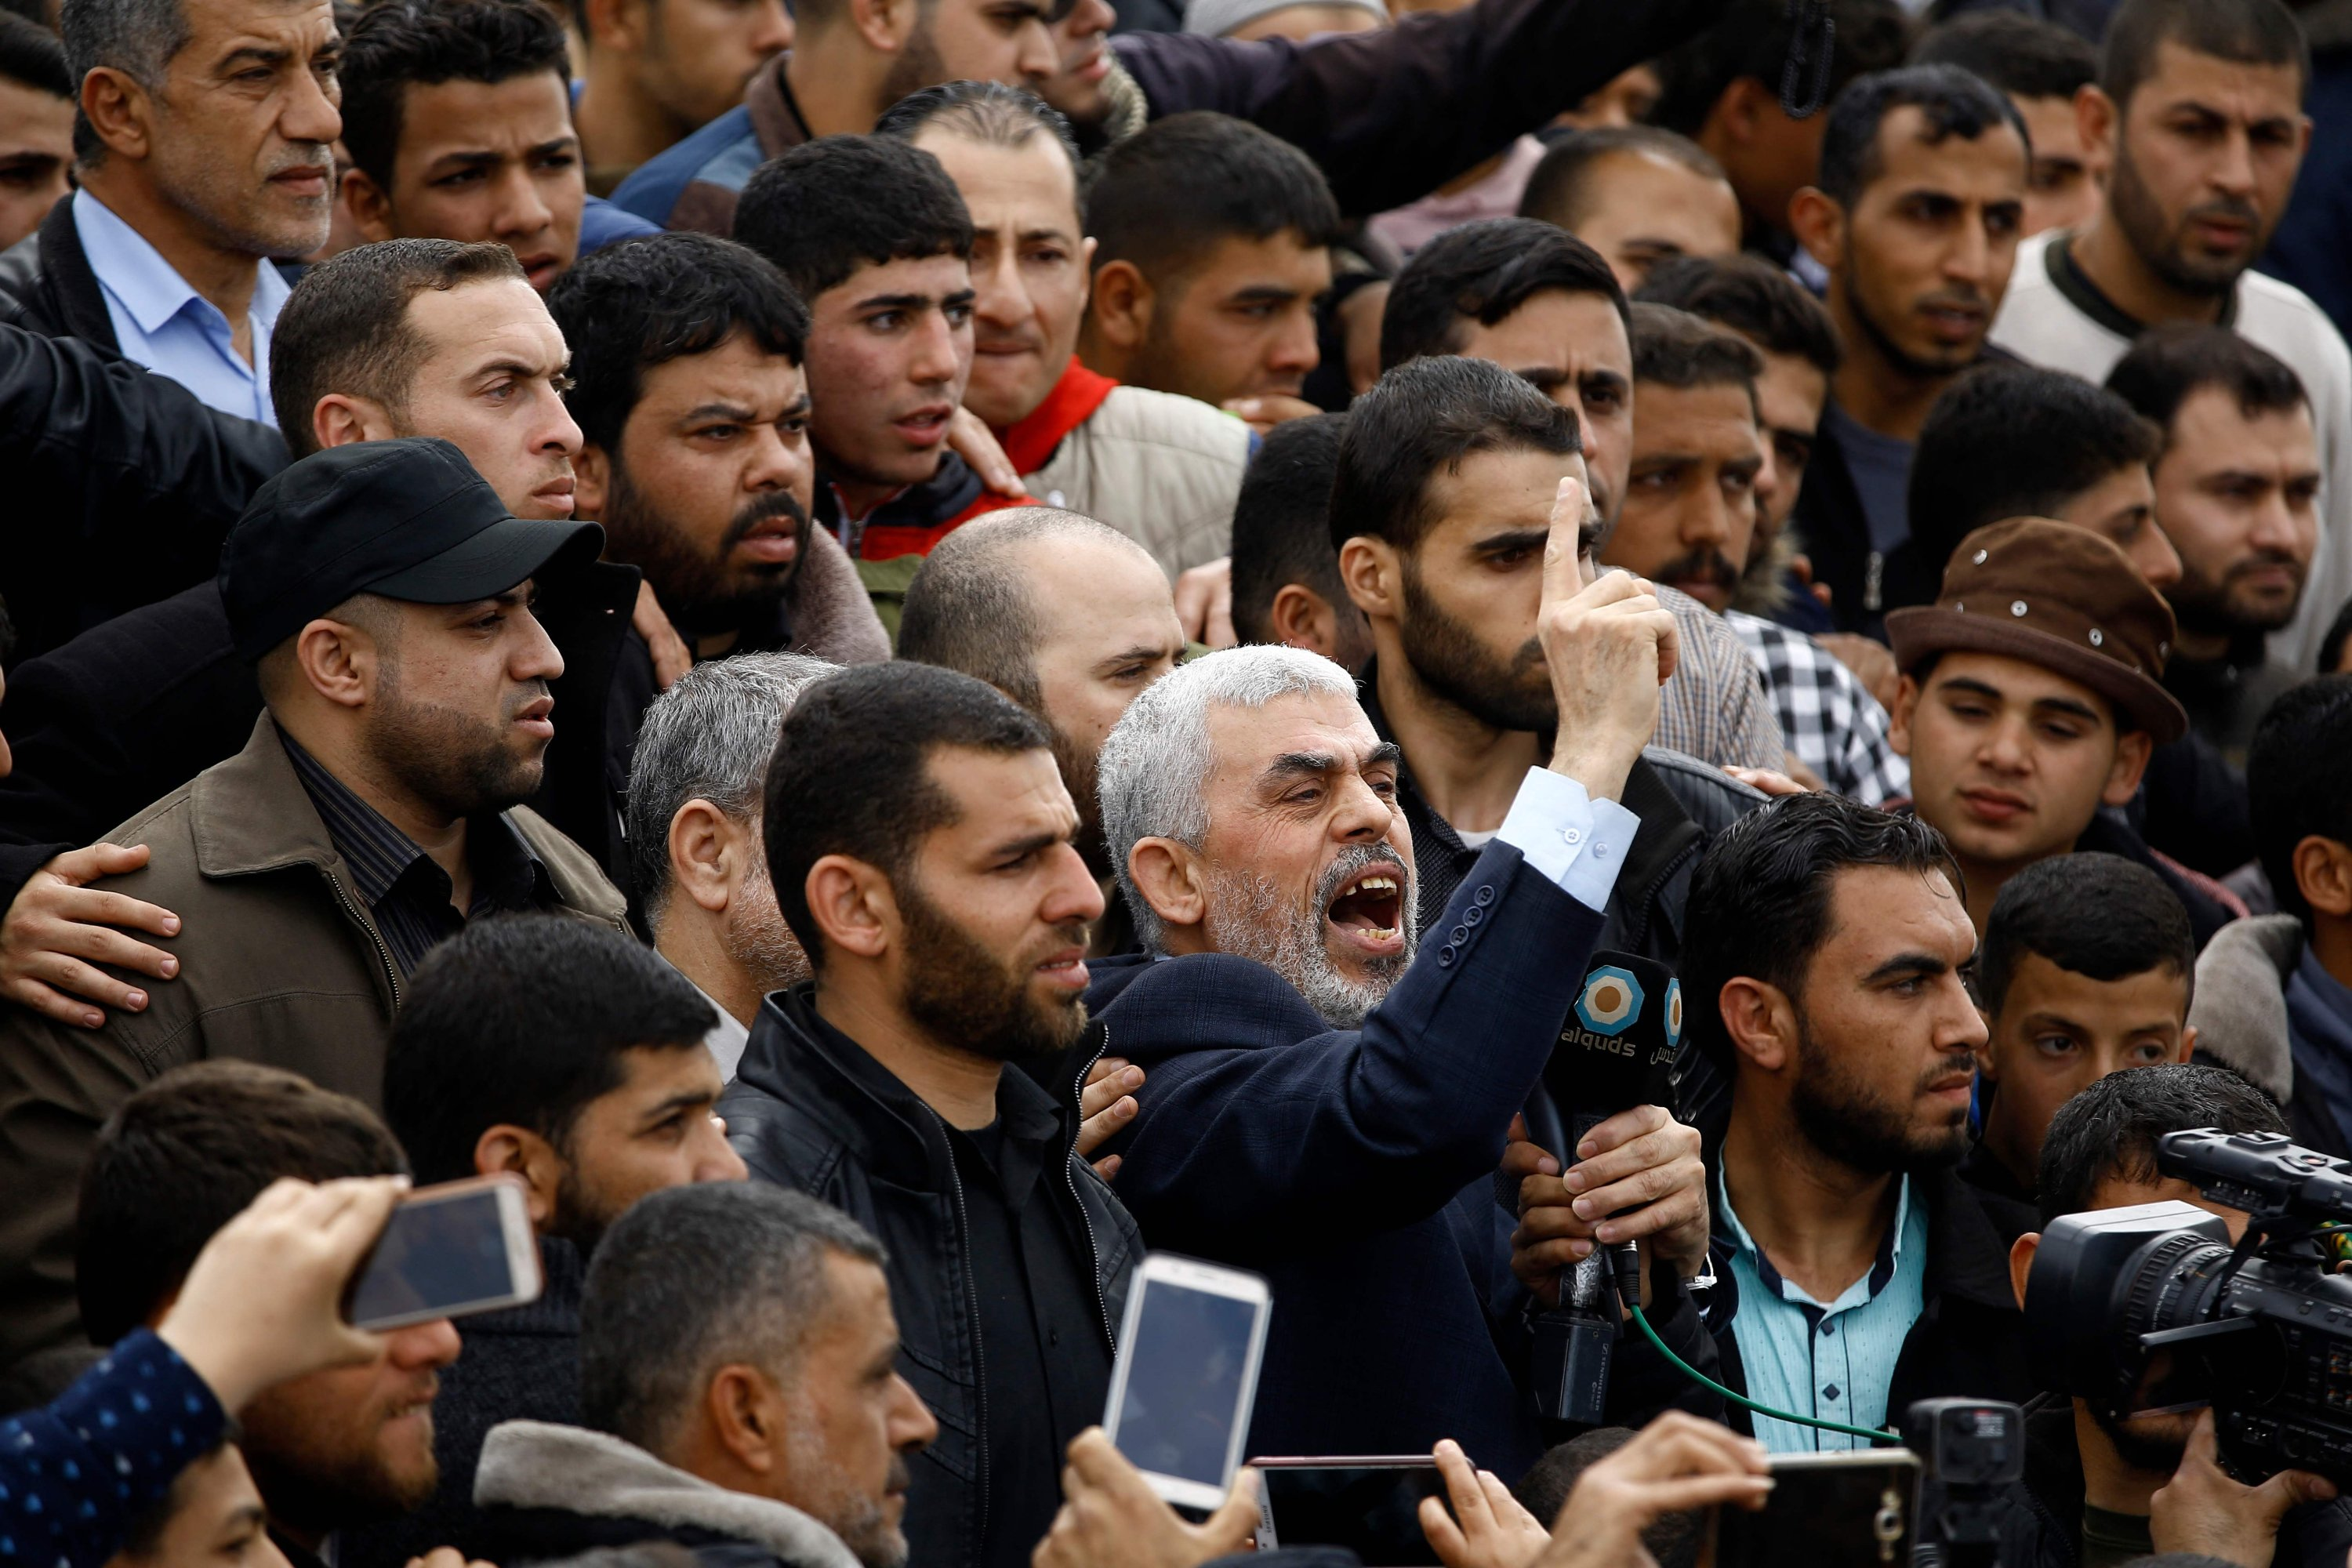 Hamas movement leader Yahya Sinwar (C) shouting slogans as he takes part in a tent city protest near the border with Israel east of Jabalia in the northern Gaza strip to commemorate Land Day, March 30, 2018. (AFP Photo)